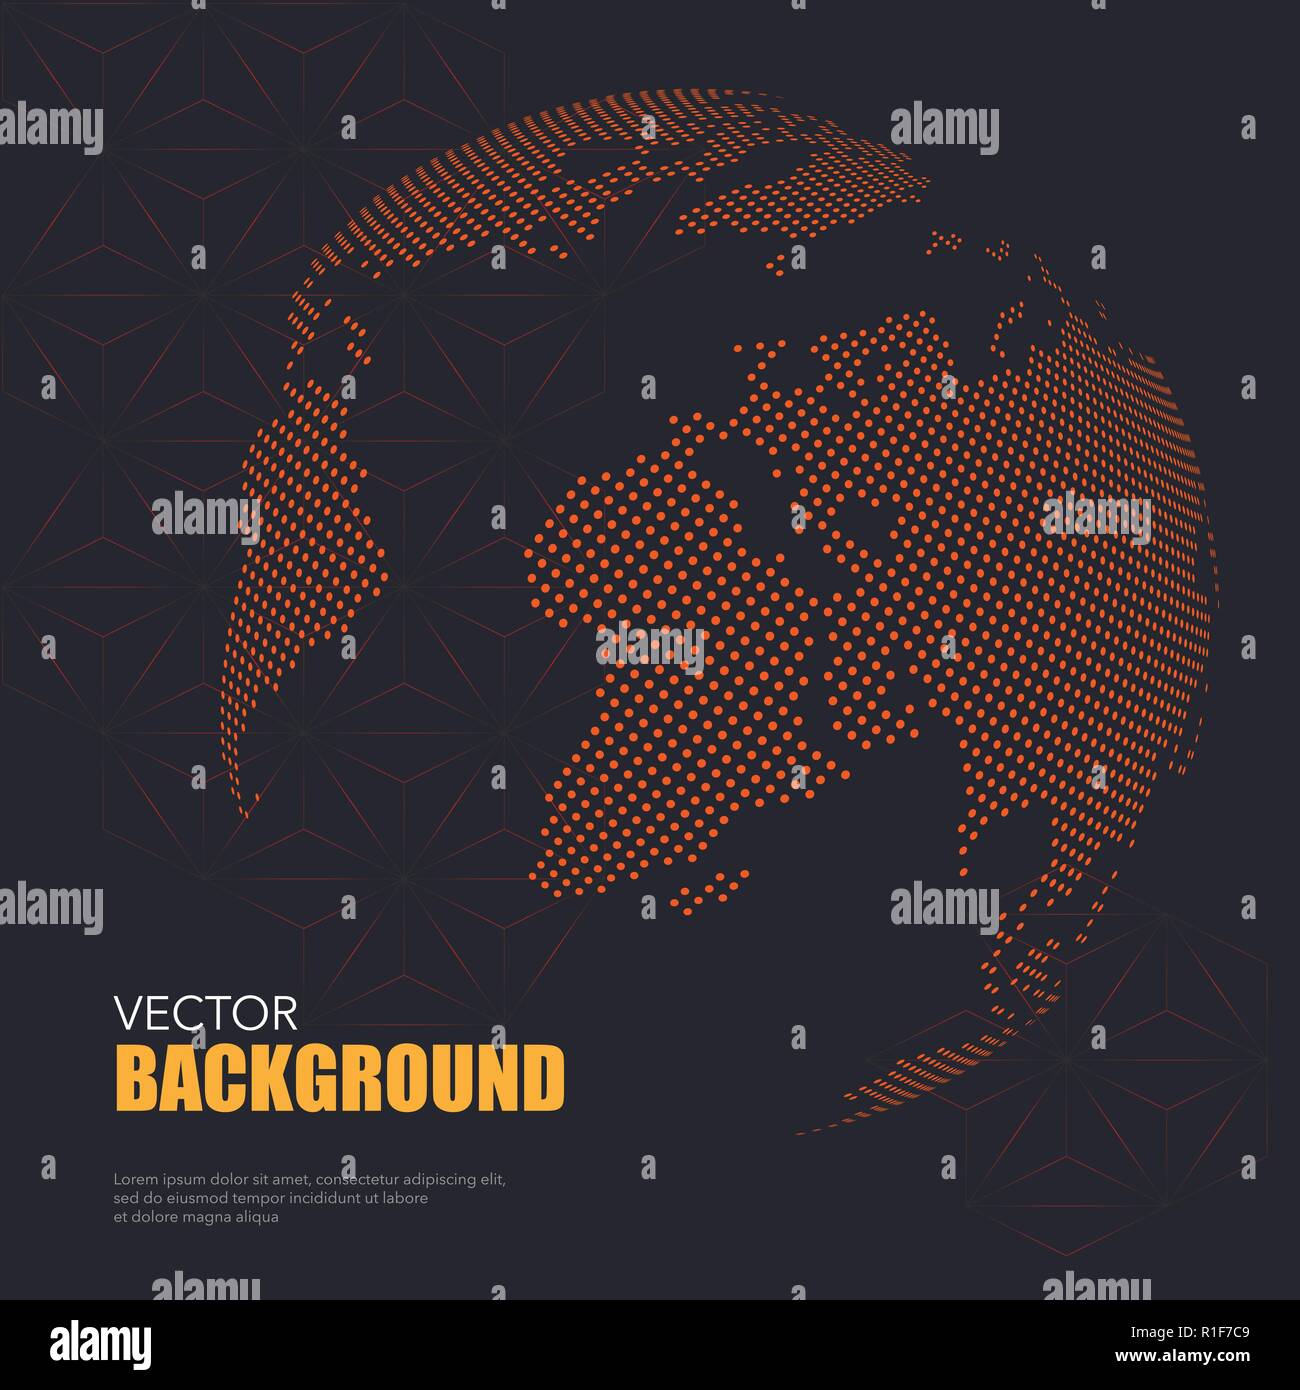 Dark background with orange dotted world map with sample text - Stock Image